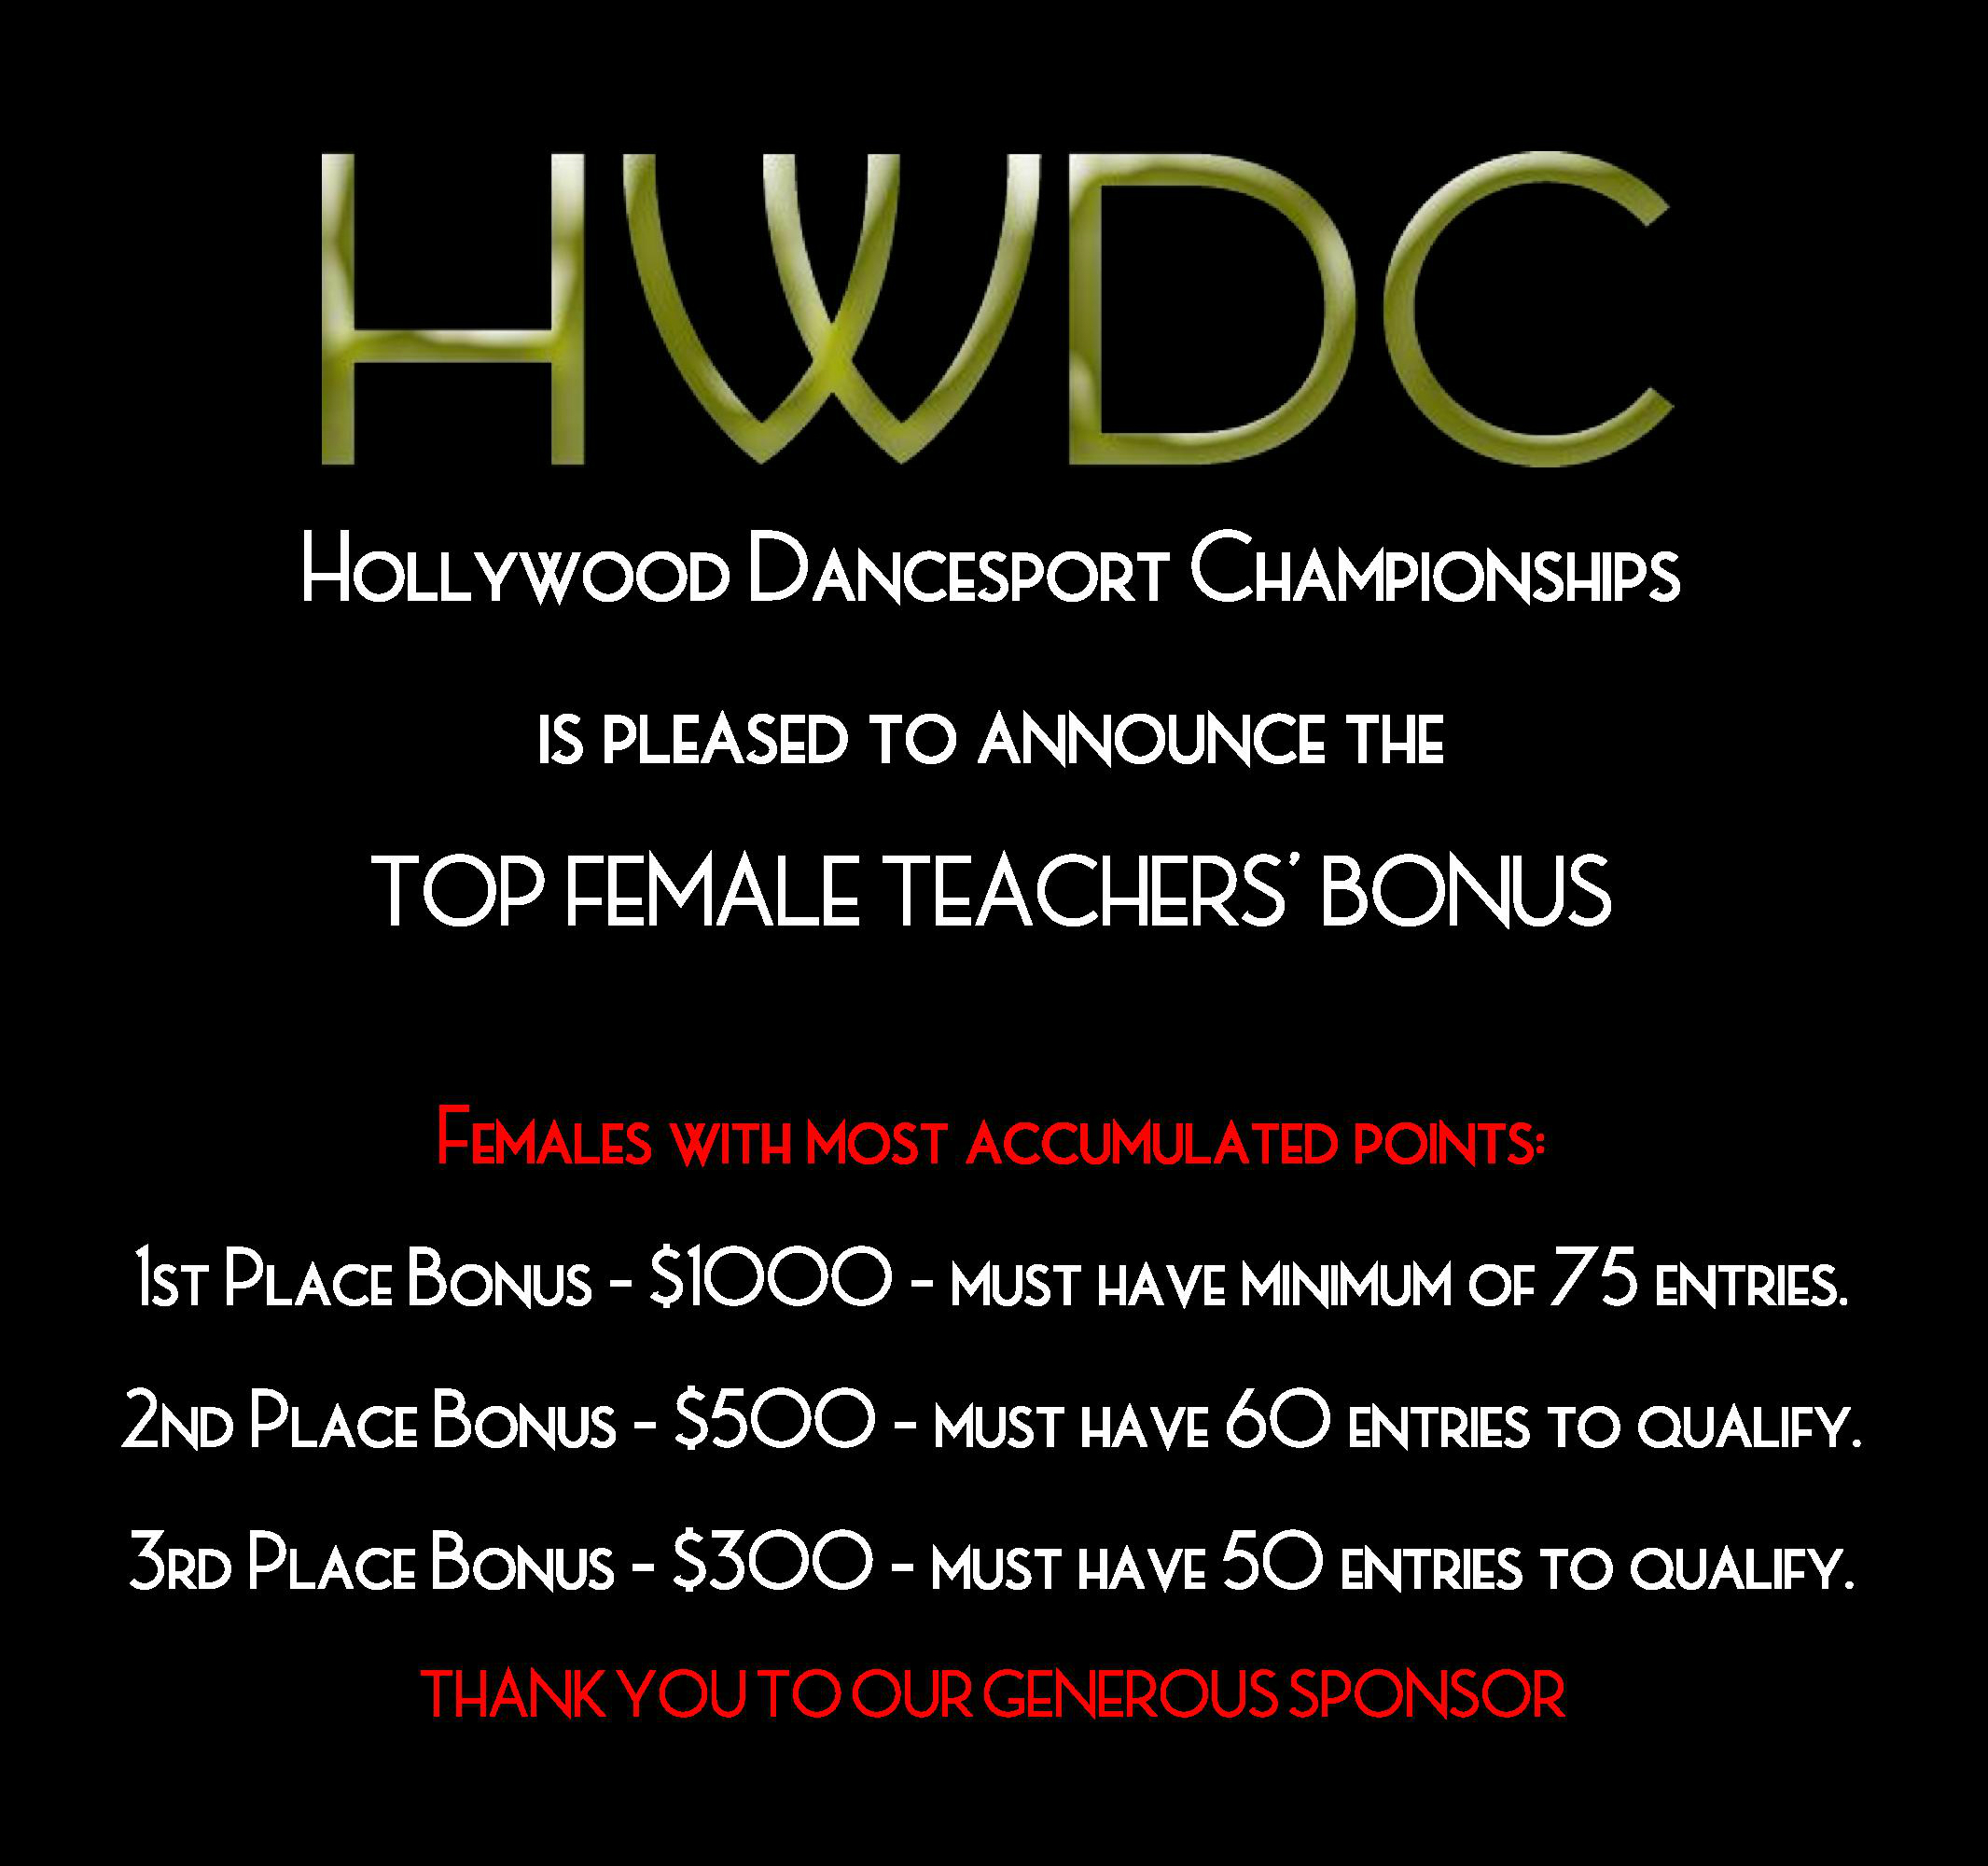 Hollywood DanceSport Championships